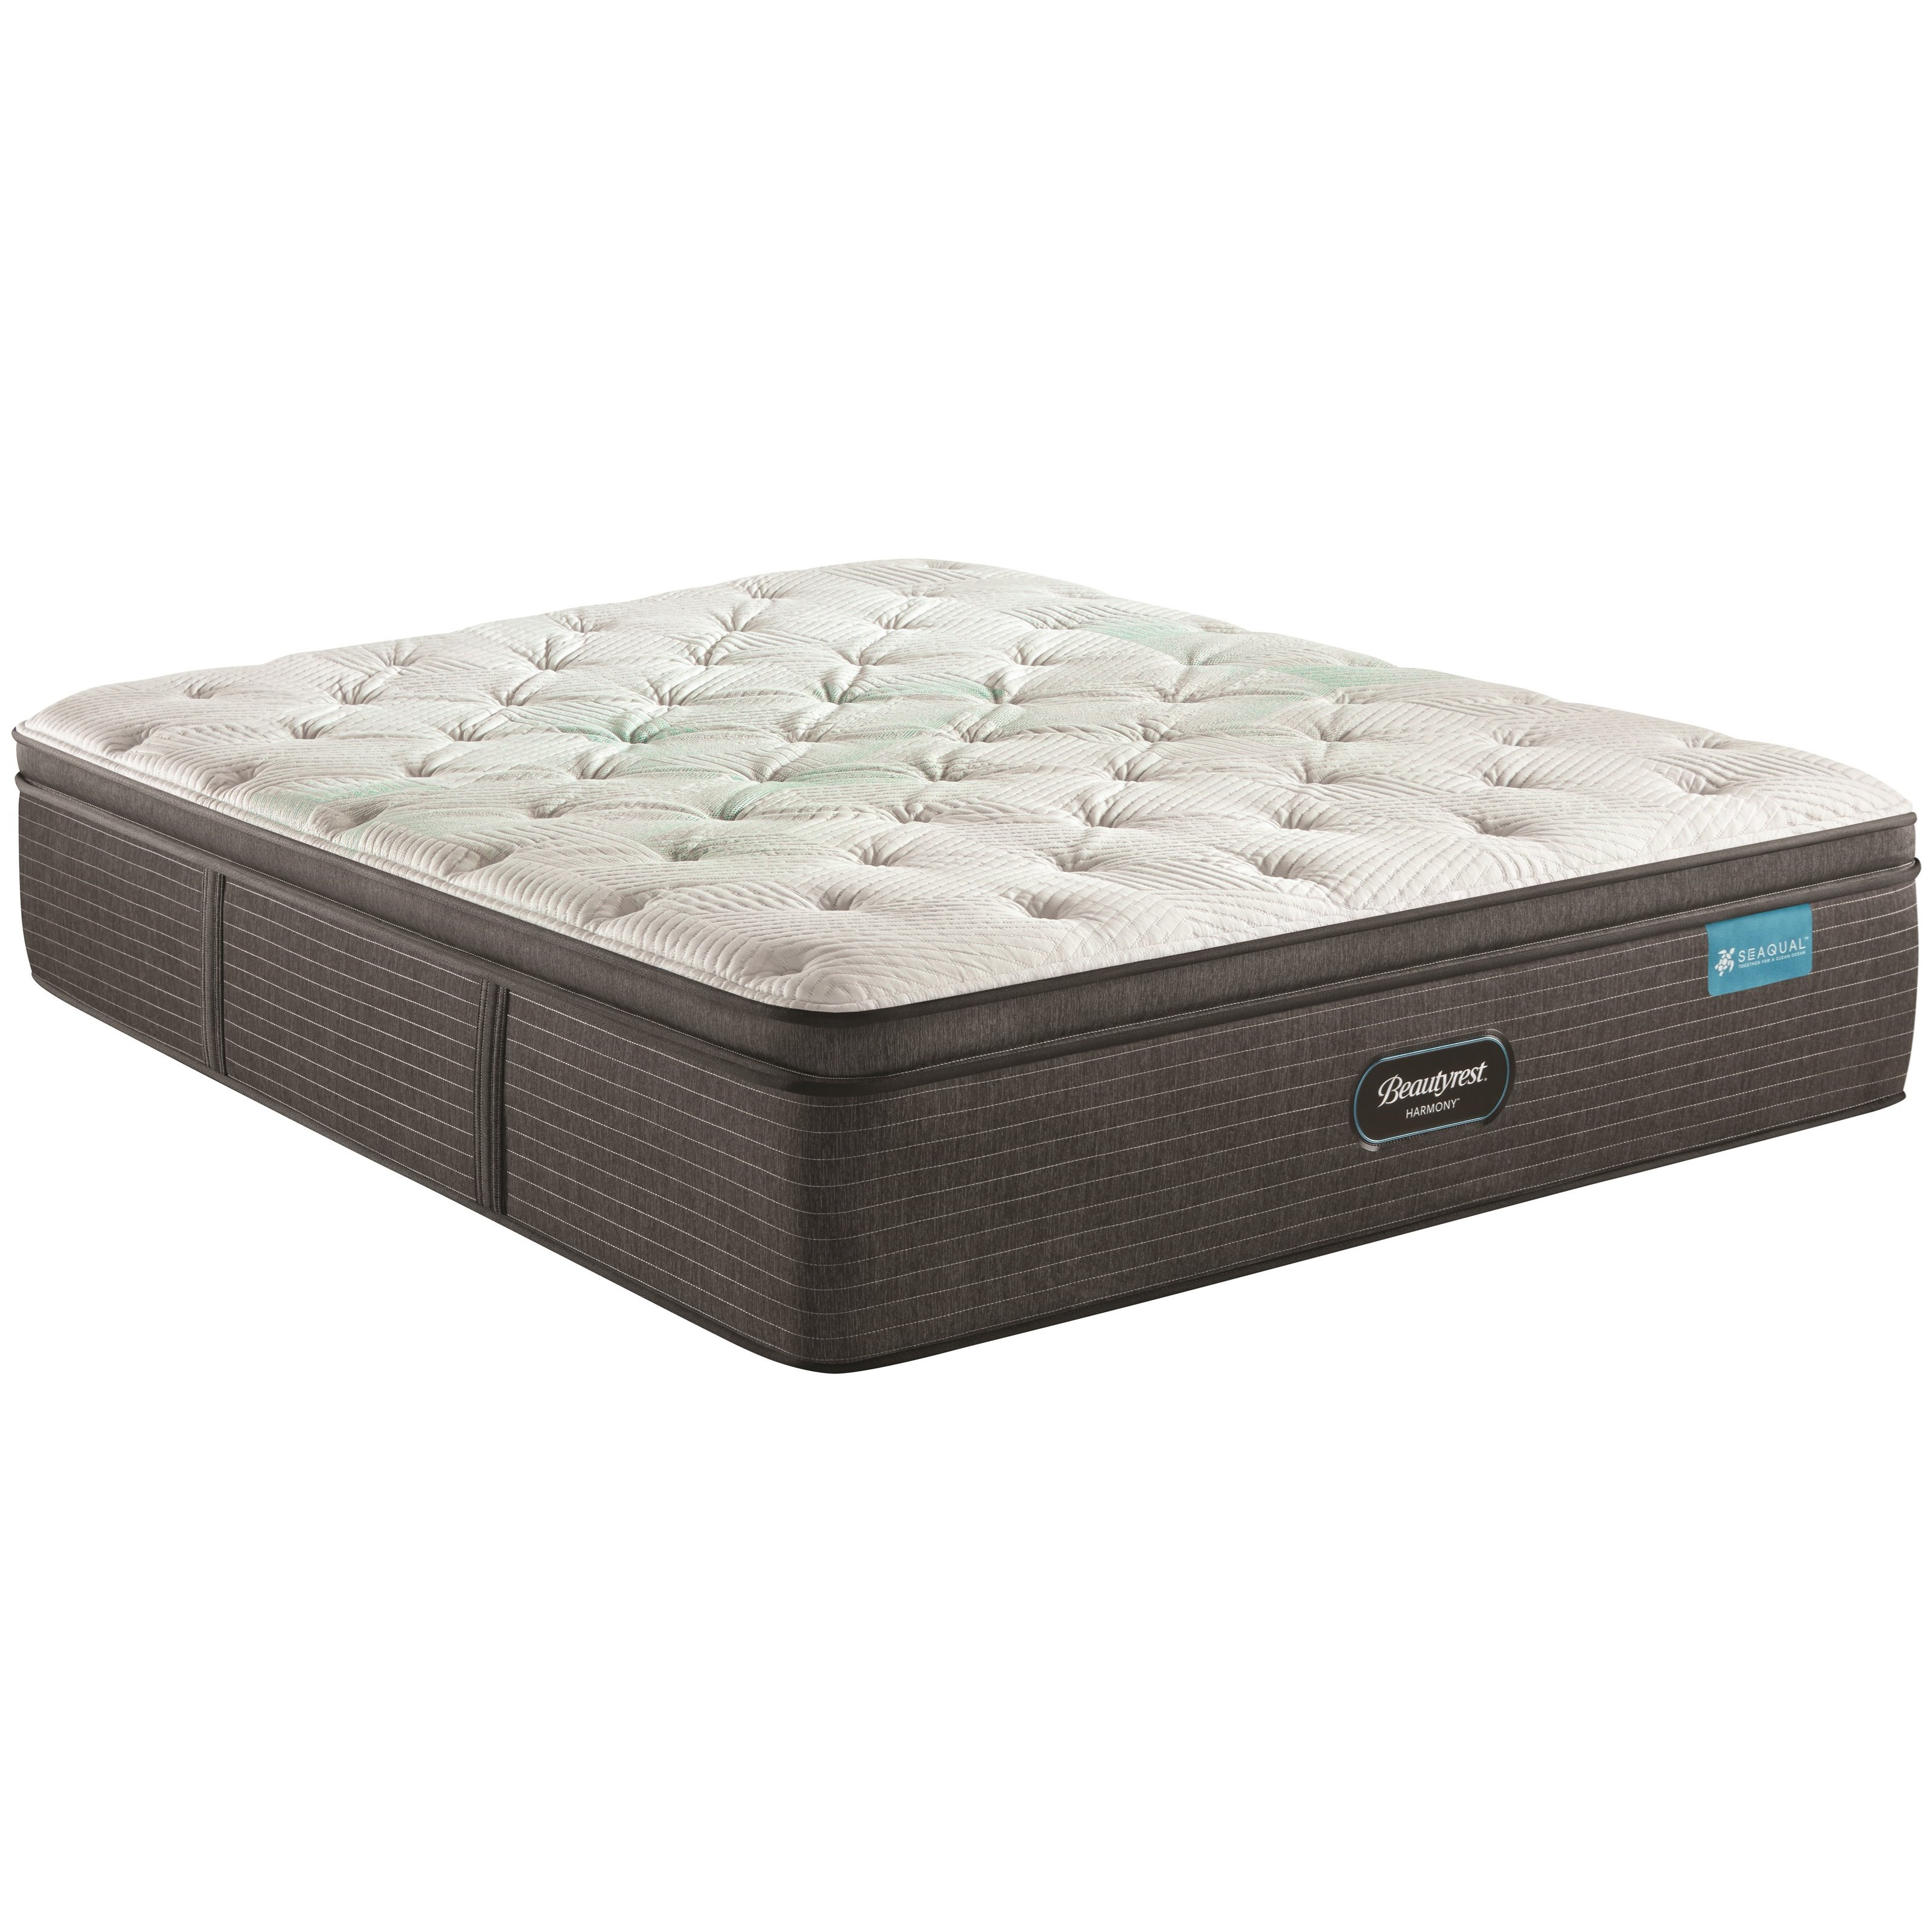 "Cayman Series Medium PT King 15 1/2"" Medium Pillow Top Mattress by Beautyrest at Darvin Furniture"